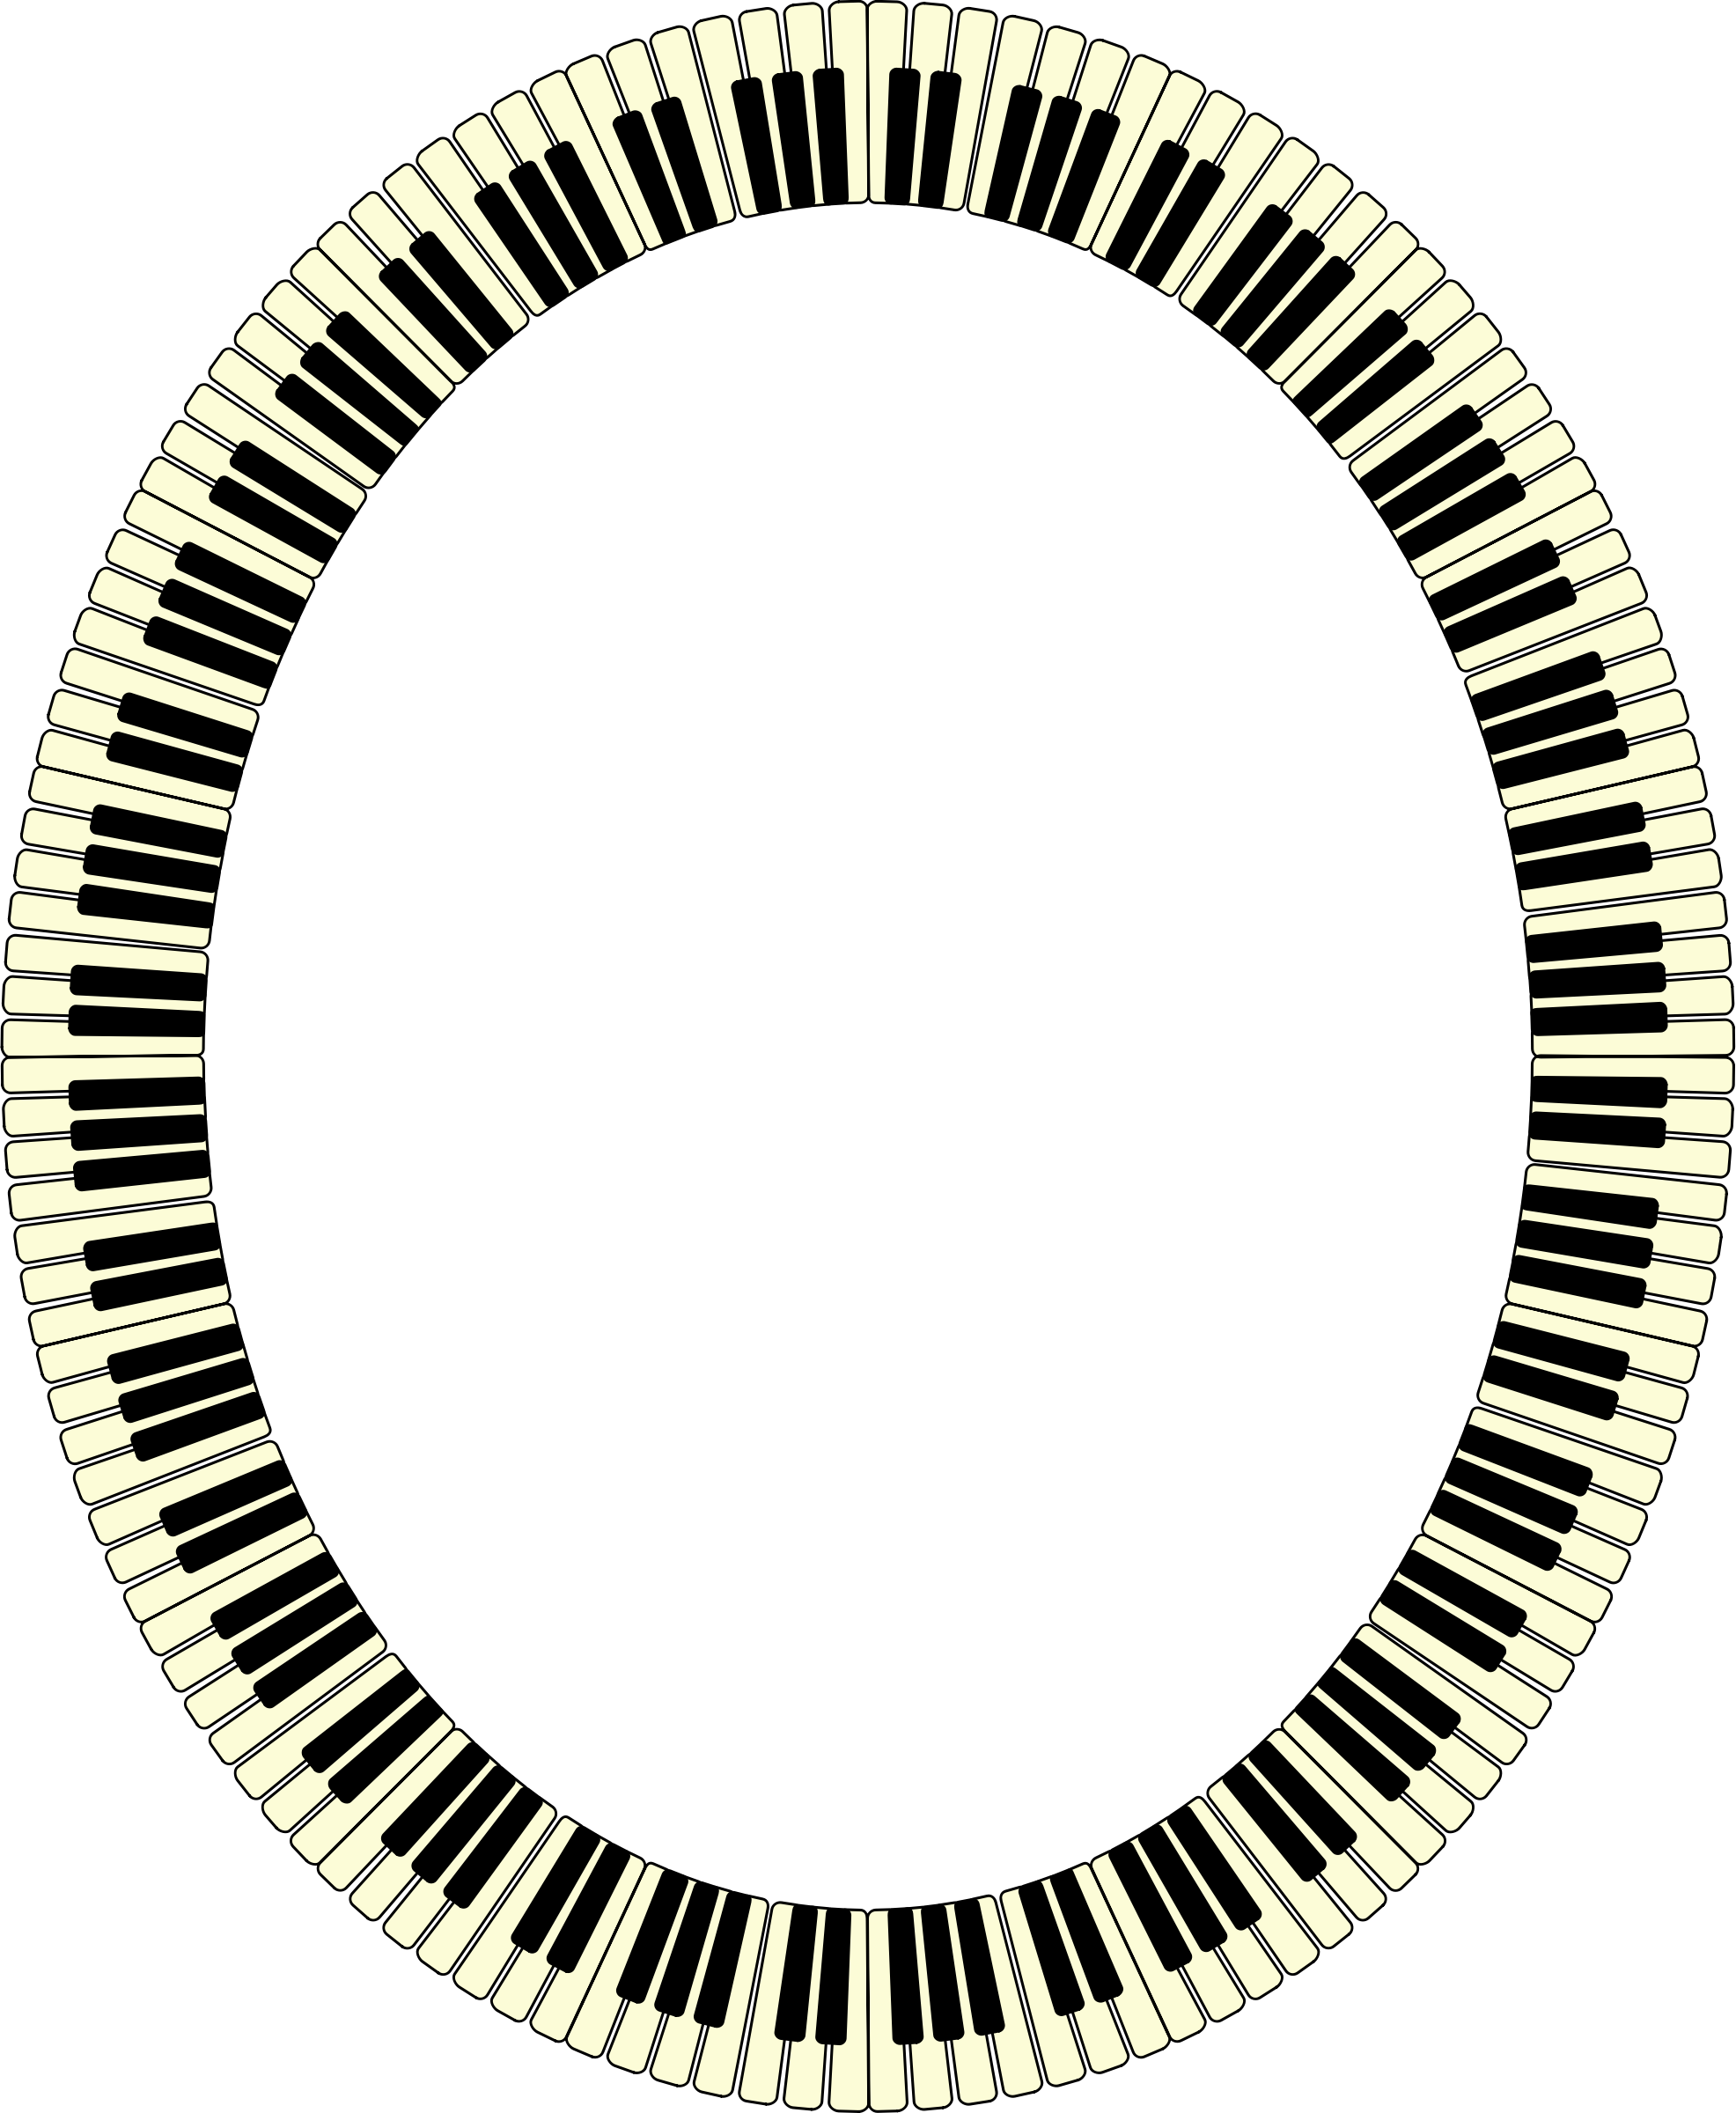 Keys ellipse inverted big. Piano clipart frame